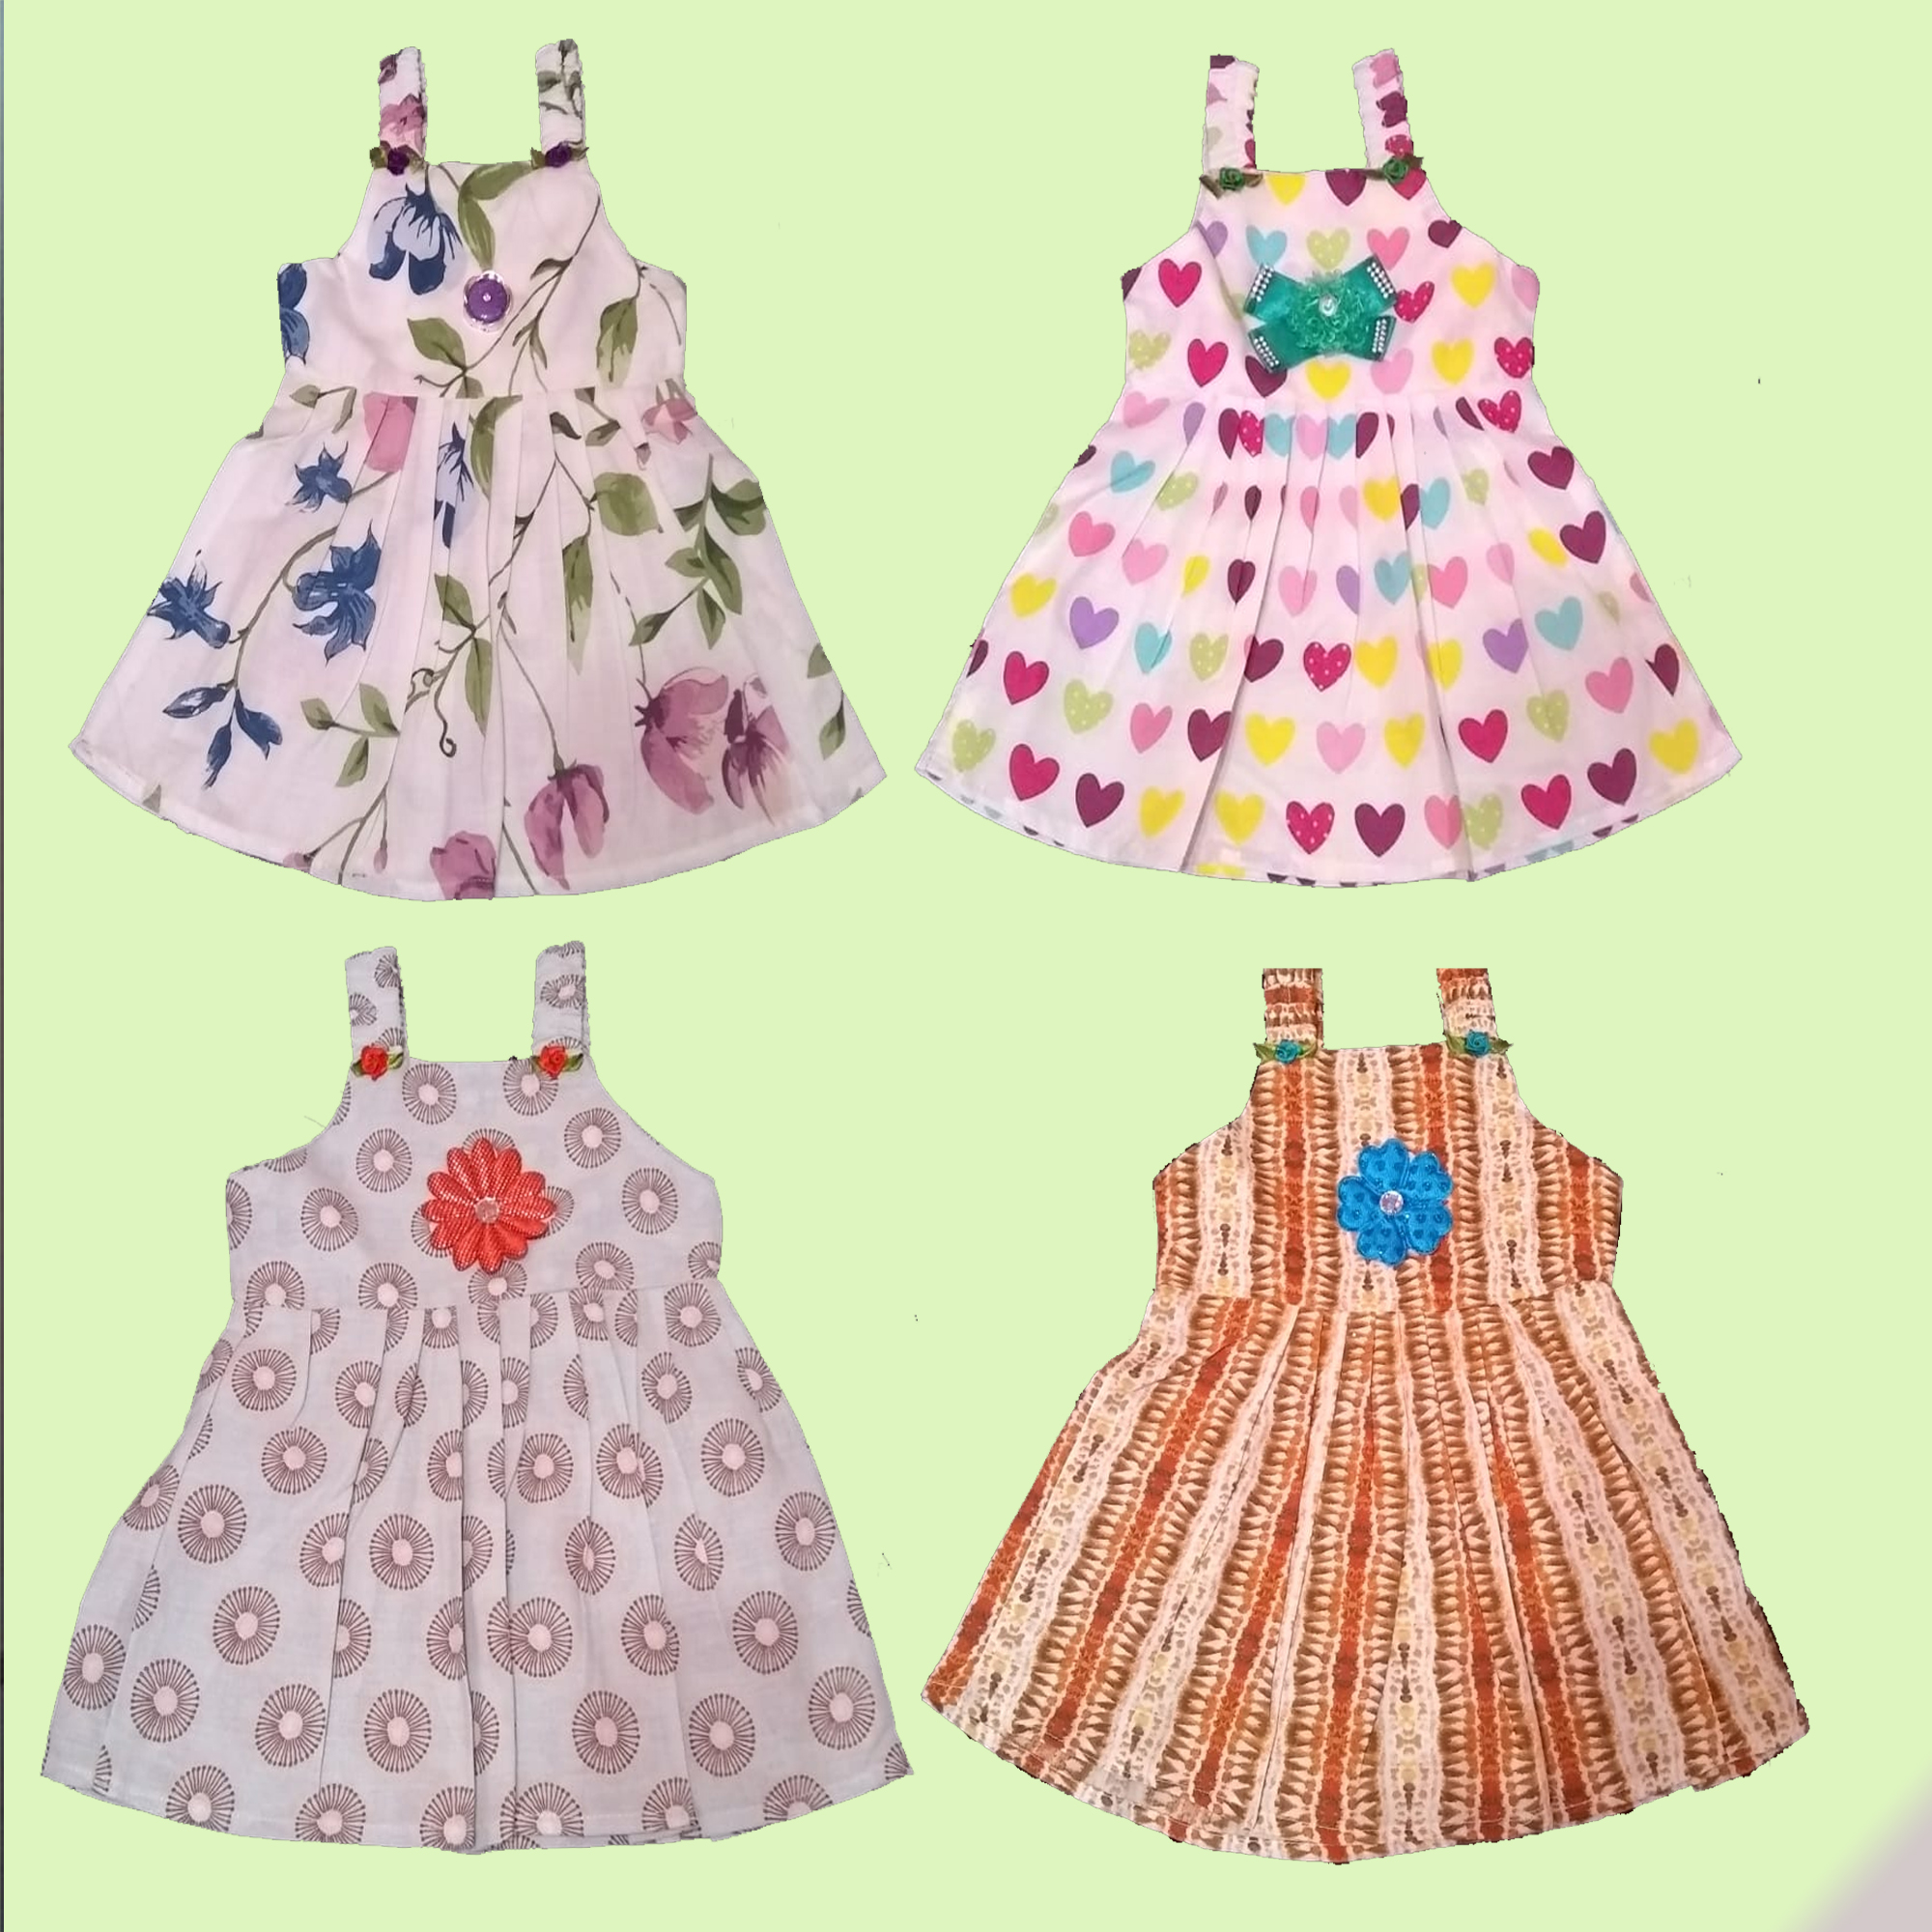 Pack Of 3 Multi-Color Baby Printed Cotton Frock For Girls (Random Design)